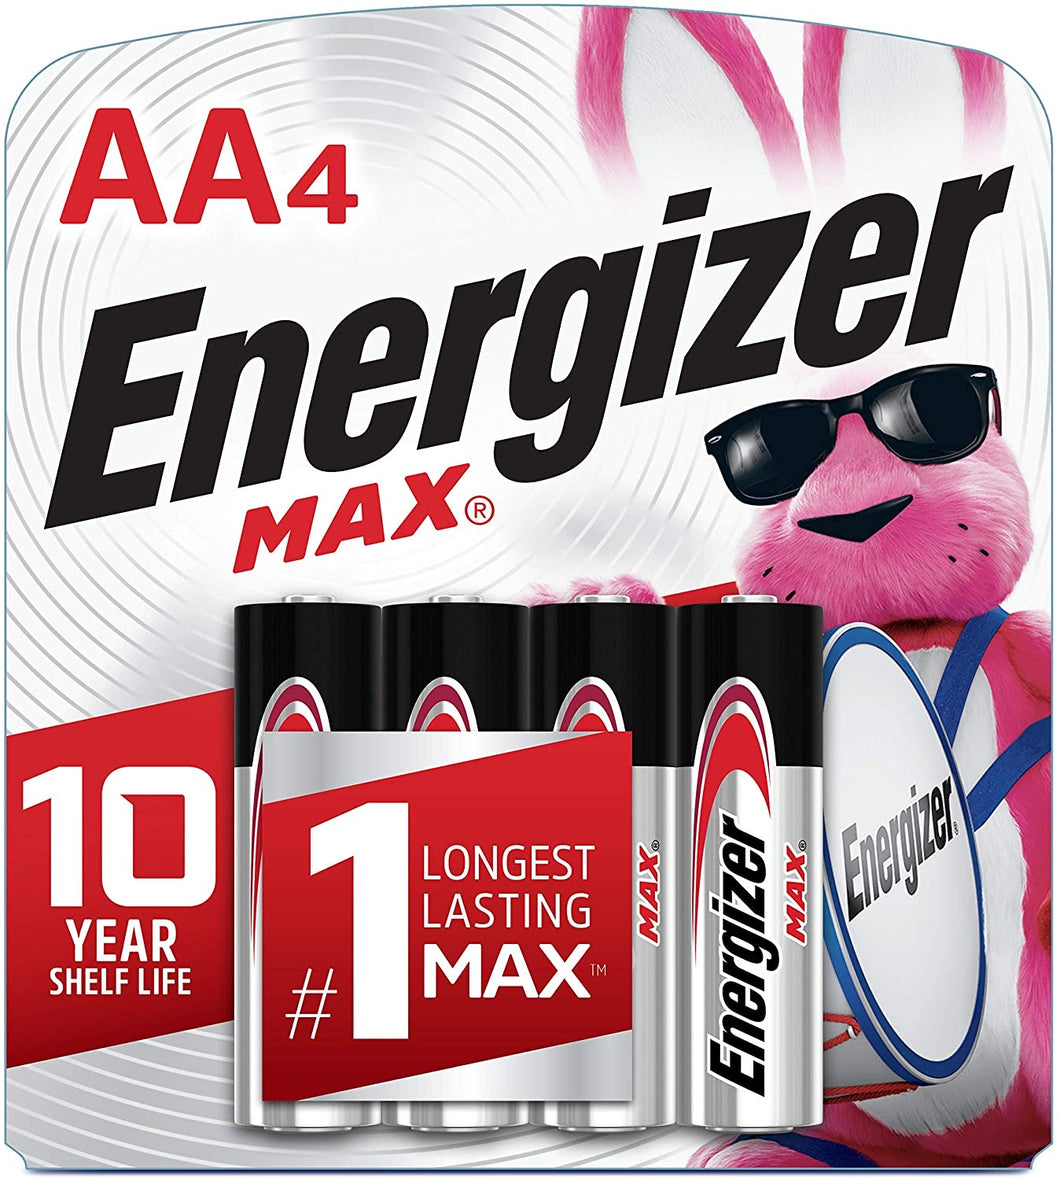 AA4 Energizer Max